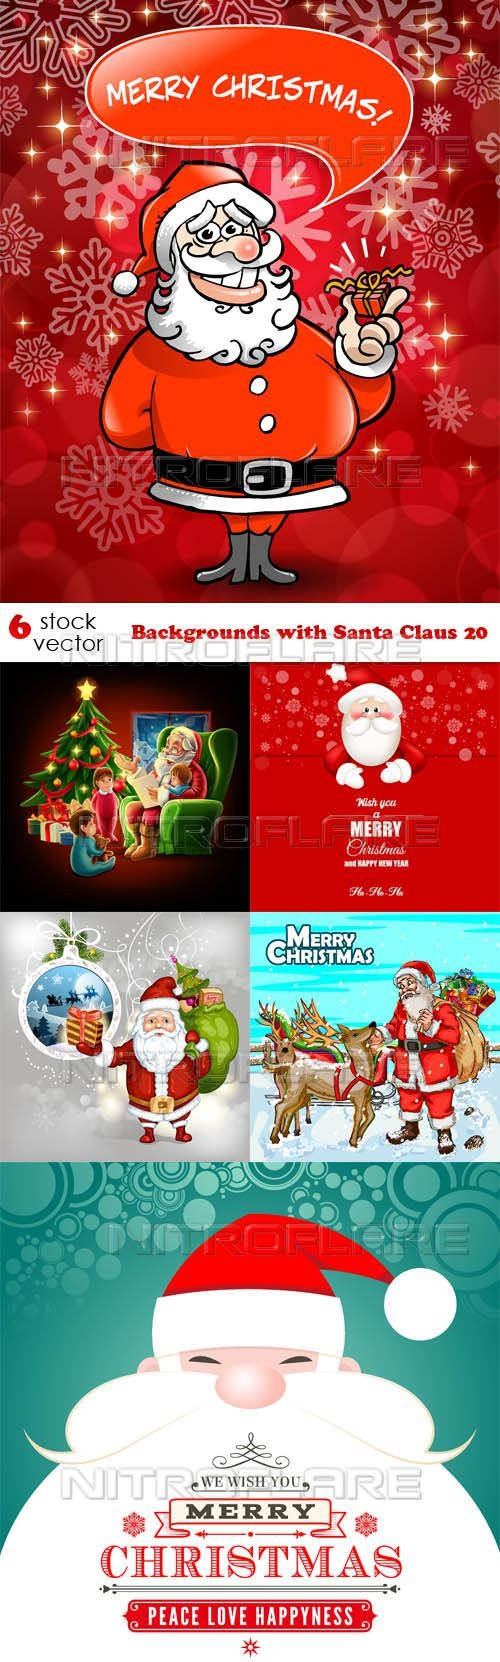 Backgrounds with Santa Claus 20 ((aitff (9 files)